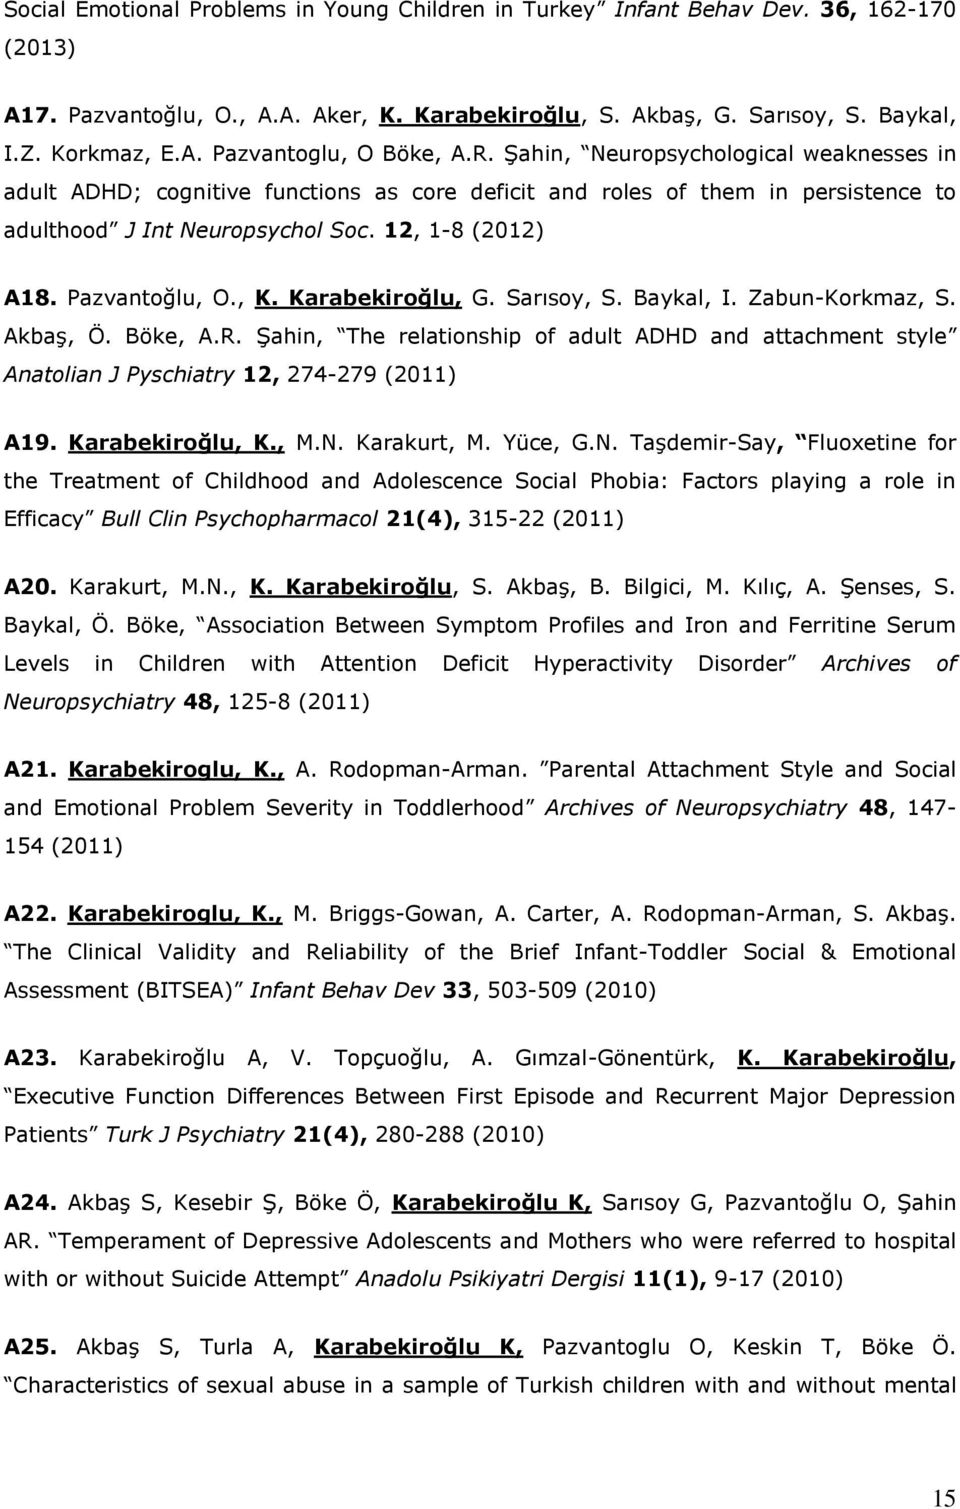 Karabekiroğlu, G. Sarısoy, S. Baykal, I. Zabun-Korkmaz, S. Akbaş, Ö. Böke, A.R. Şahin, The relationship of adult ADHD and attachment style Anatolian J Pyschiatry 12, 274-279 (2011) A19.